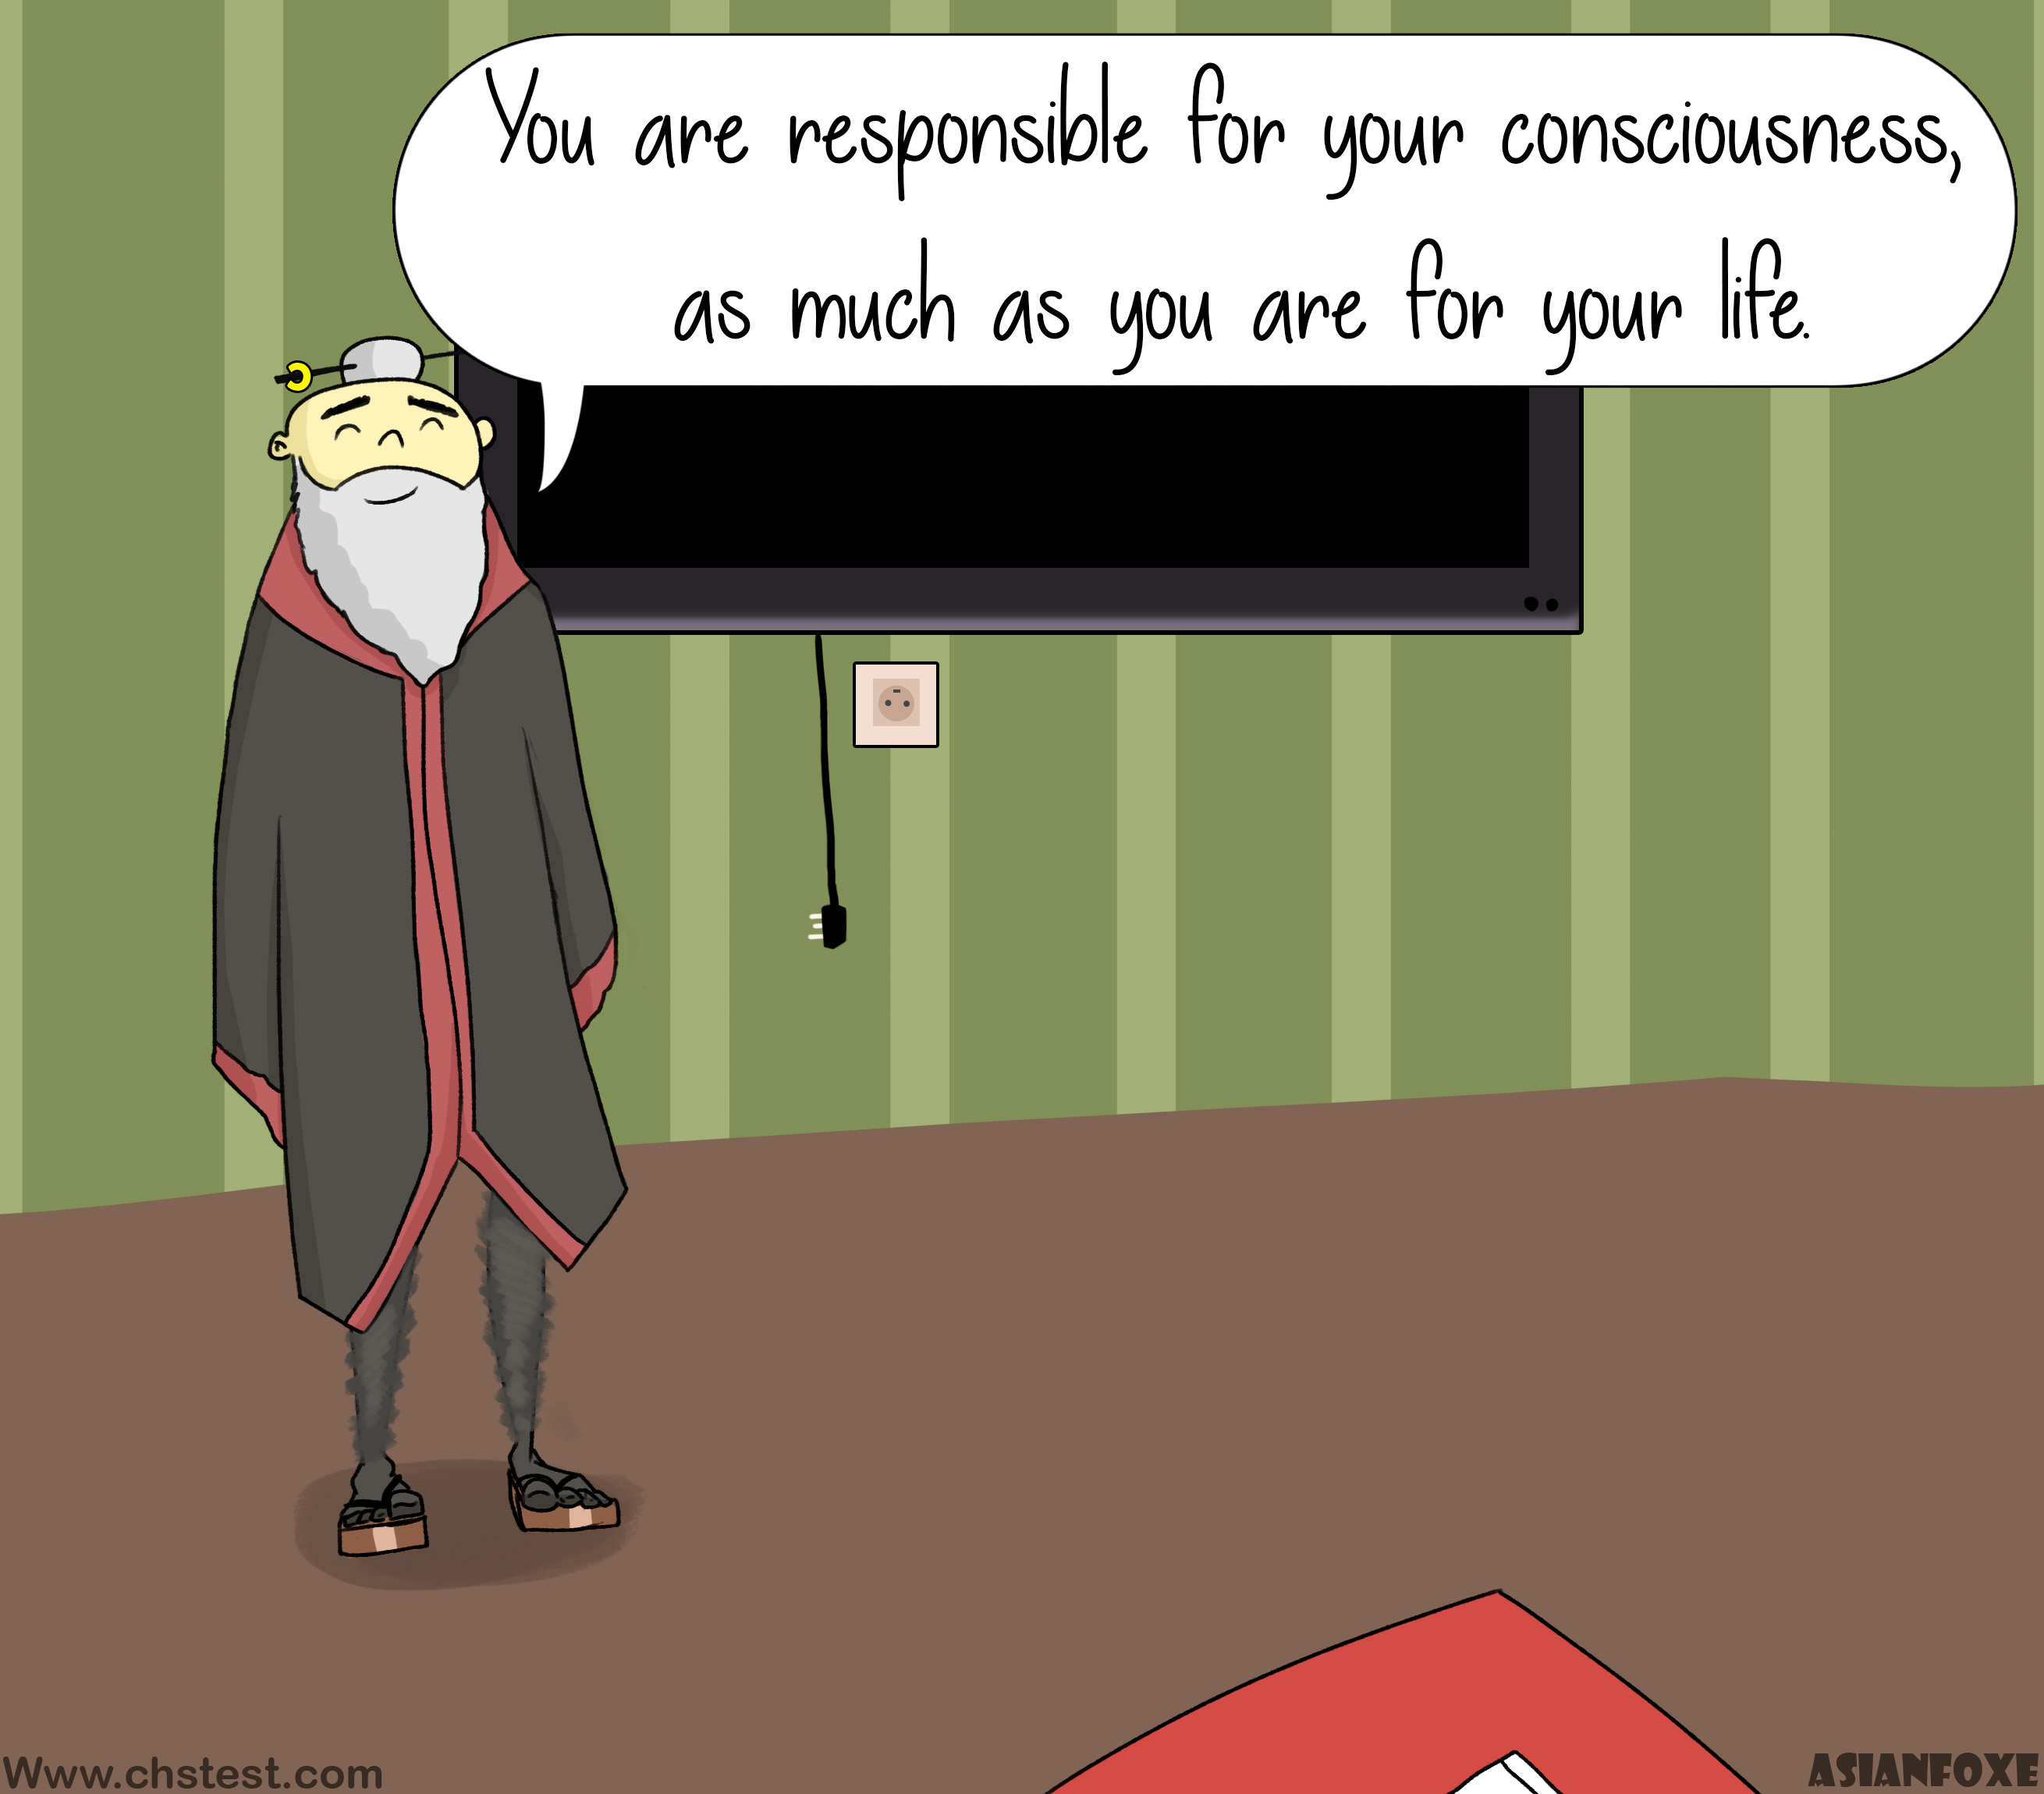 Consciousness: You are responsible for your consciousness, as much as you are for your life.